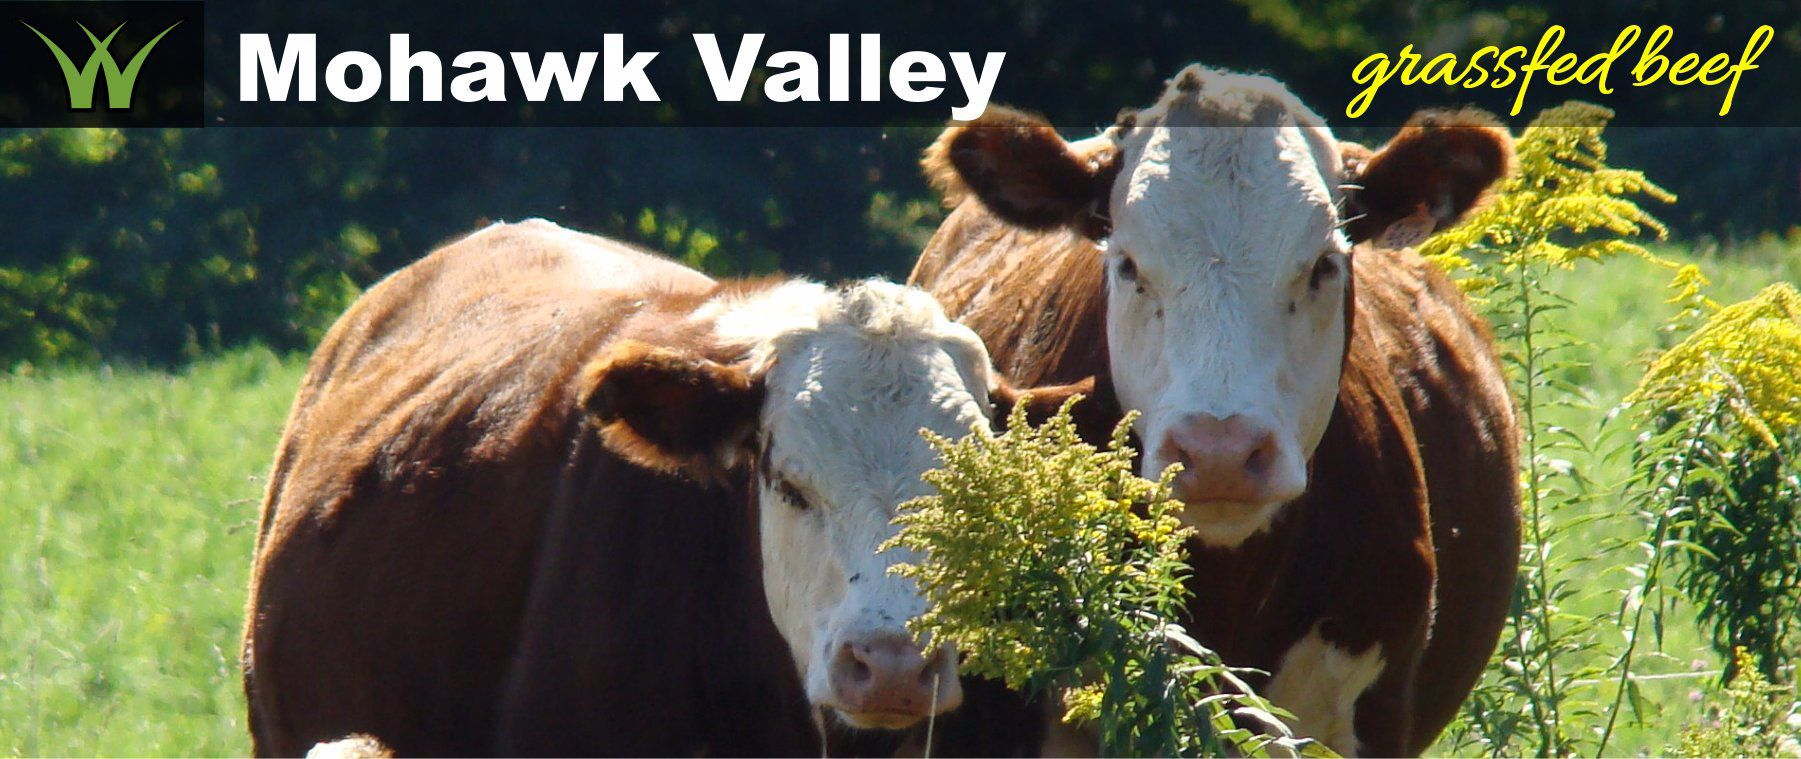 Mohawk Valley Grassfed Beef